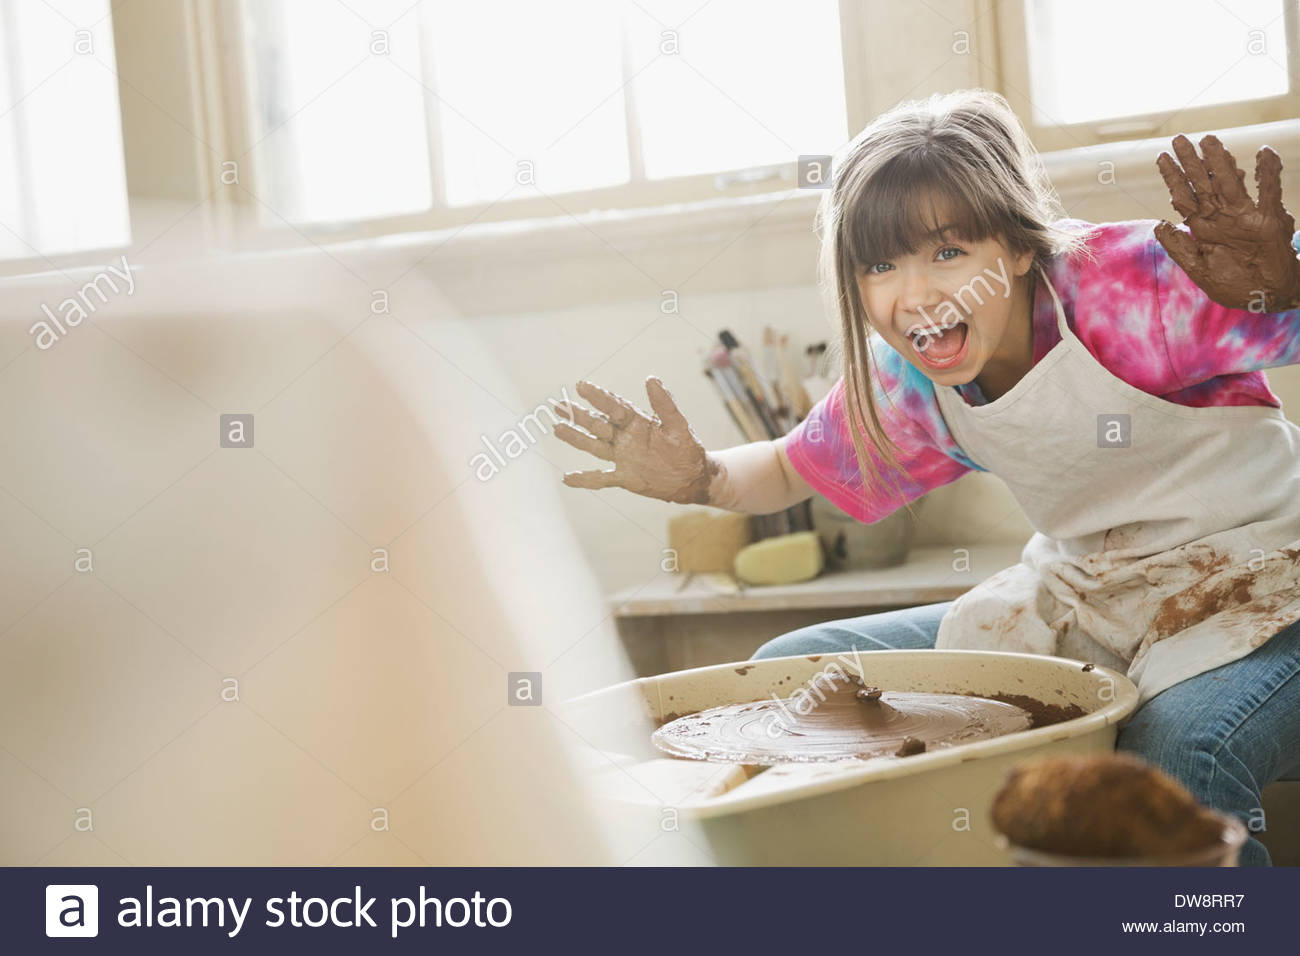 Portrait of girl showing palms in pottery class - Stock Image